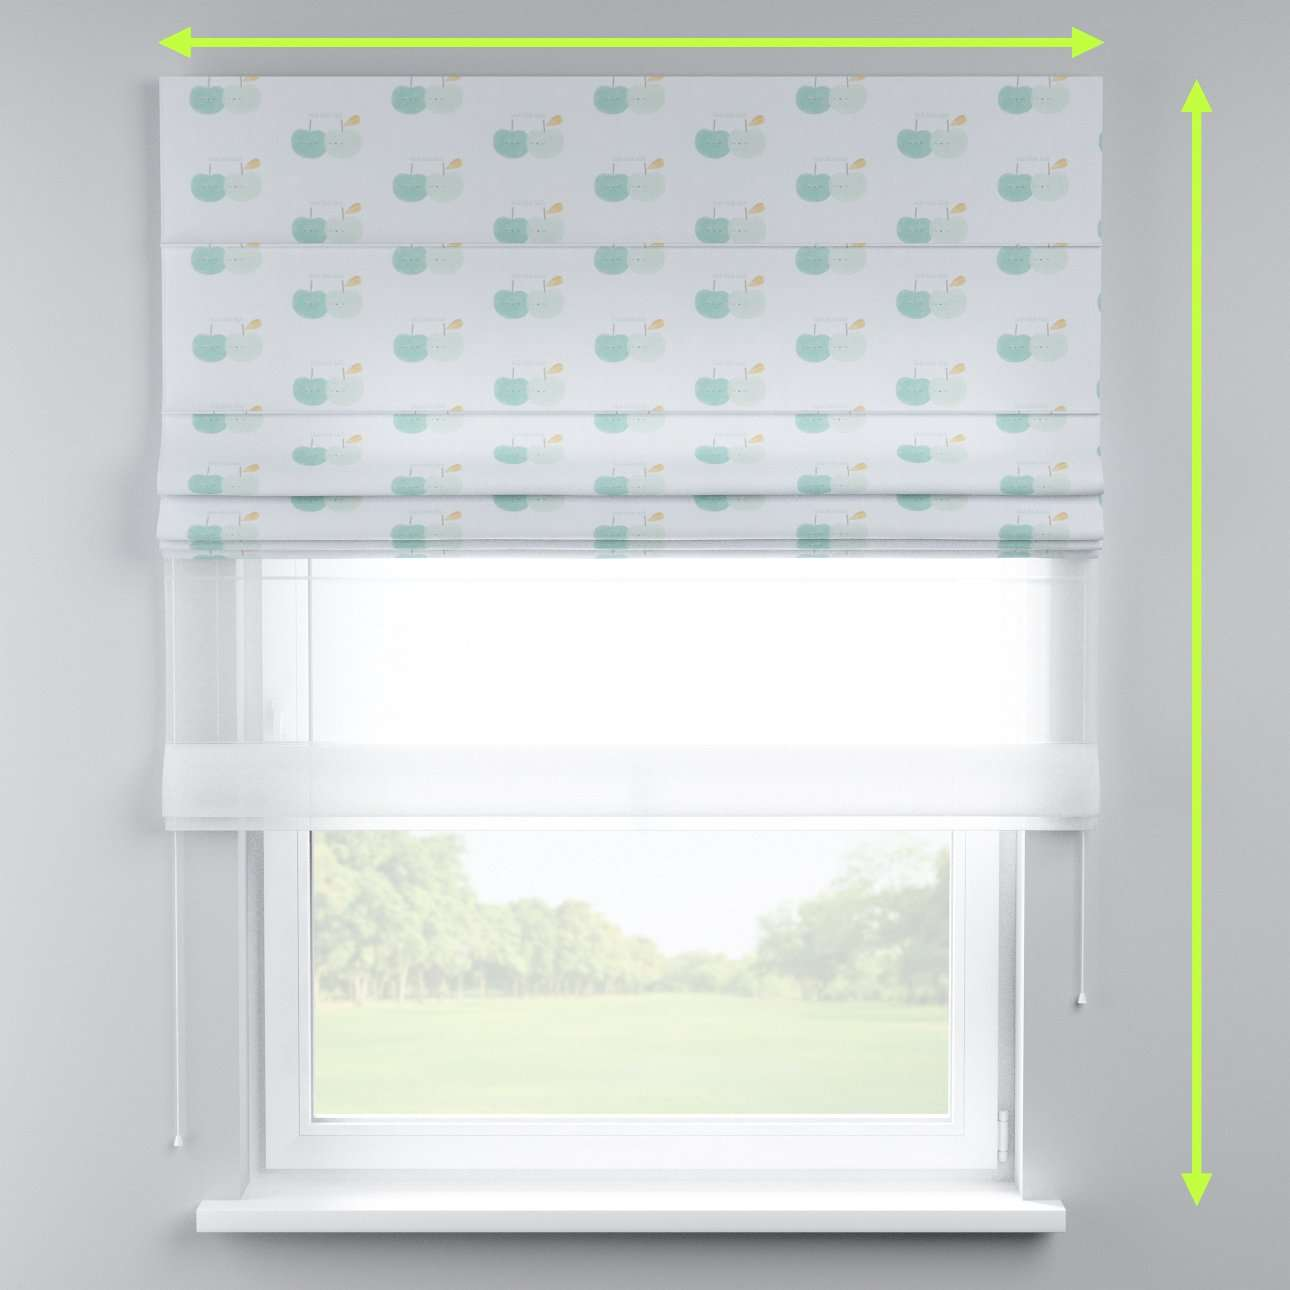 Voile and fabric roman blind (DUO II) in collection Apanona, fabric: 151-02